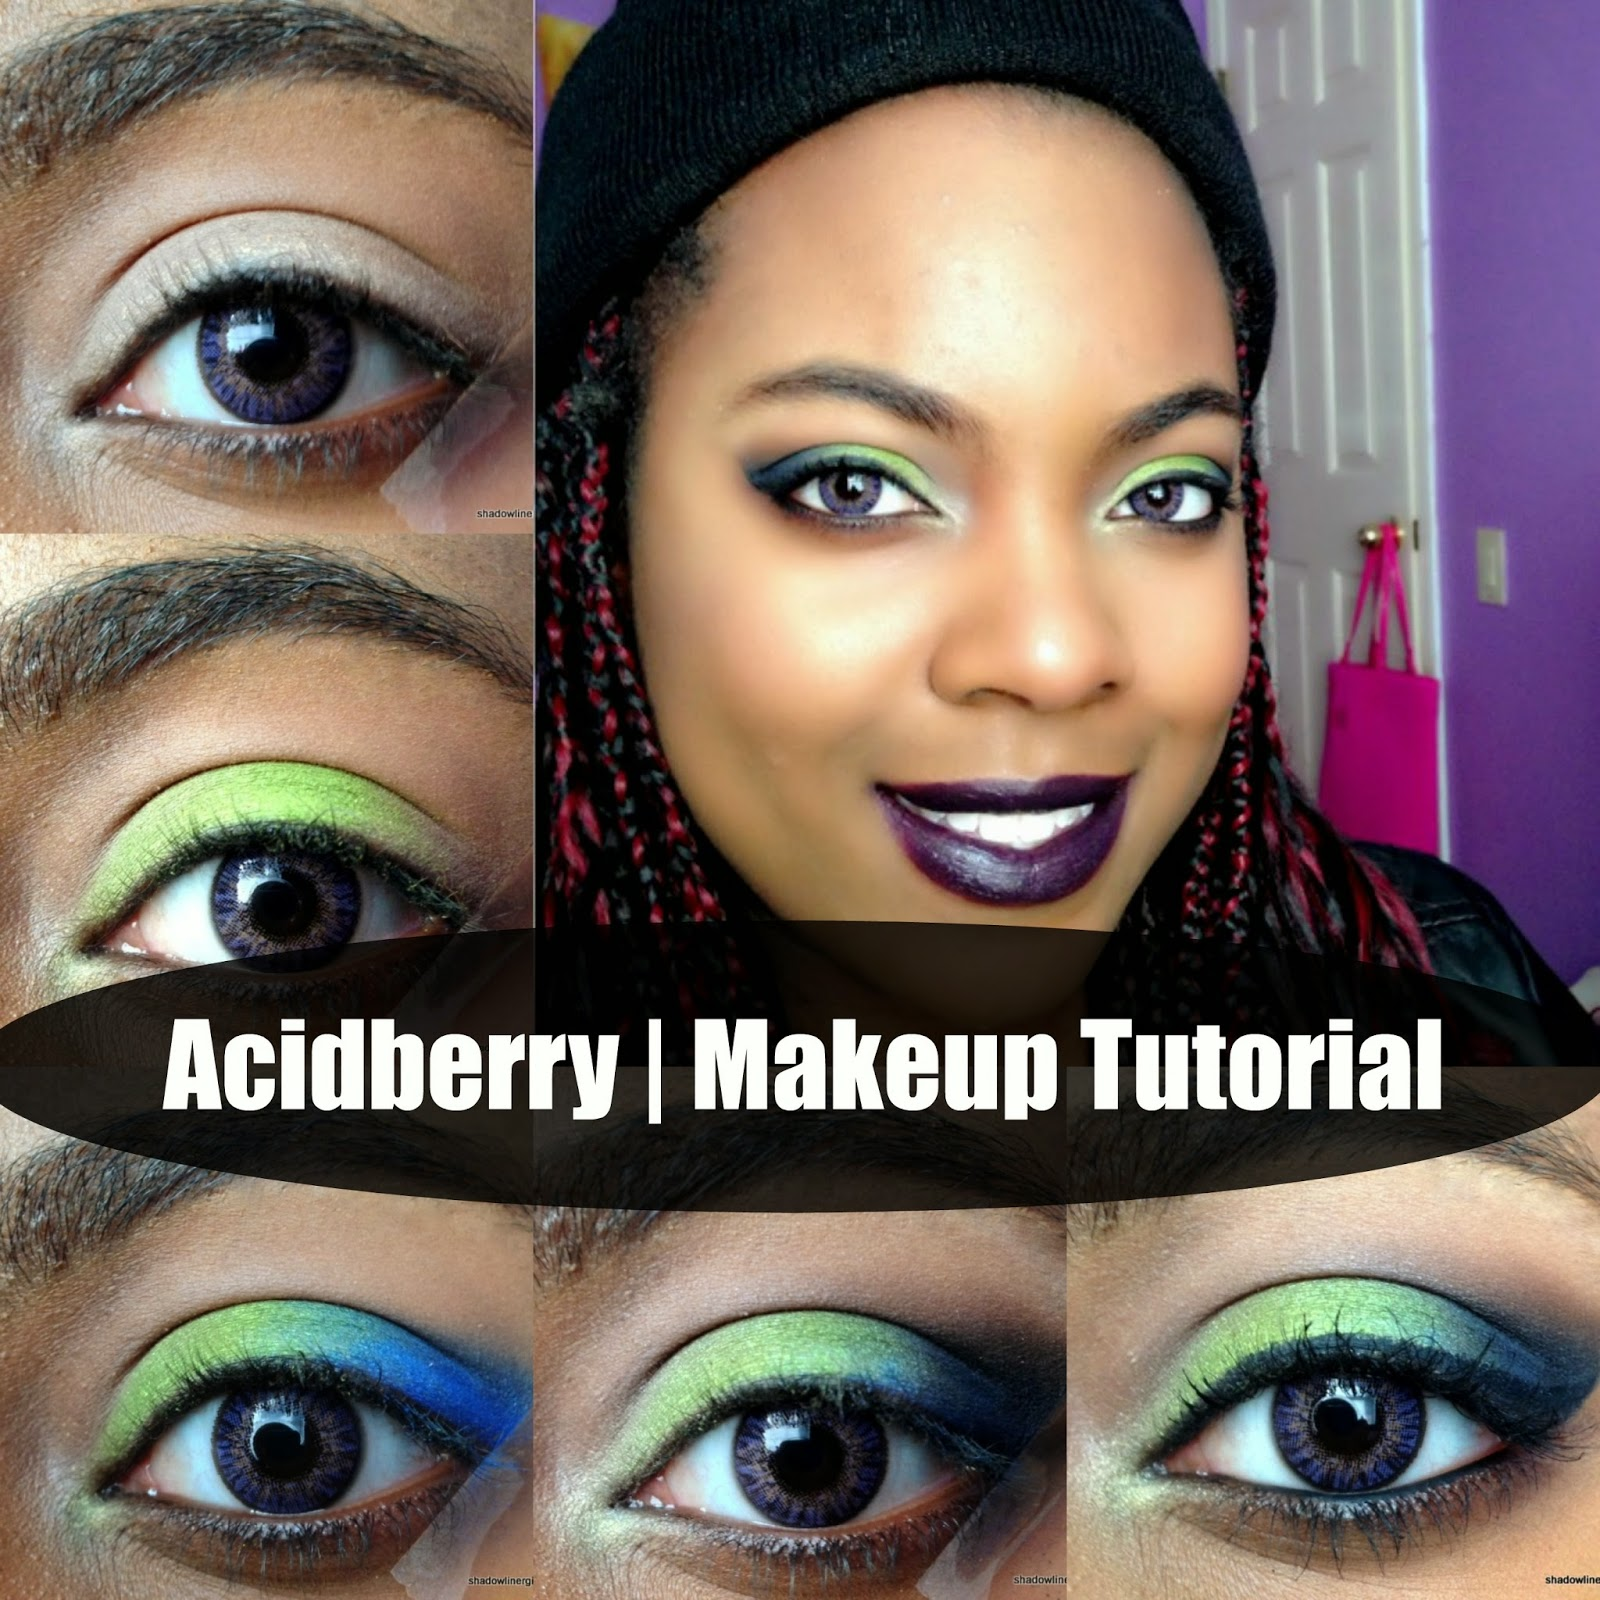 Acid Berry Makeup Tutorial